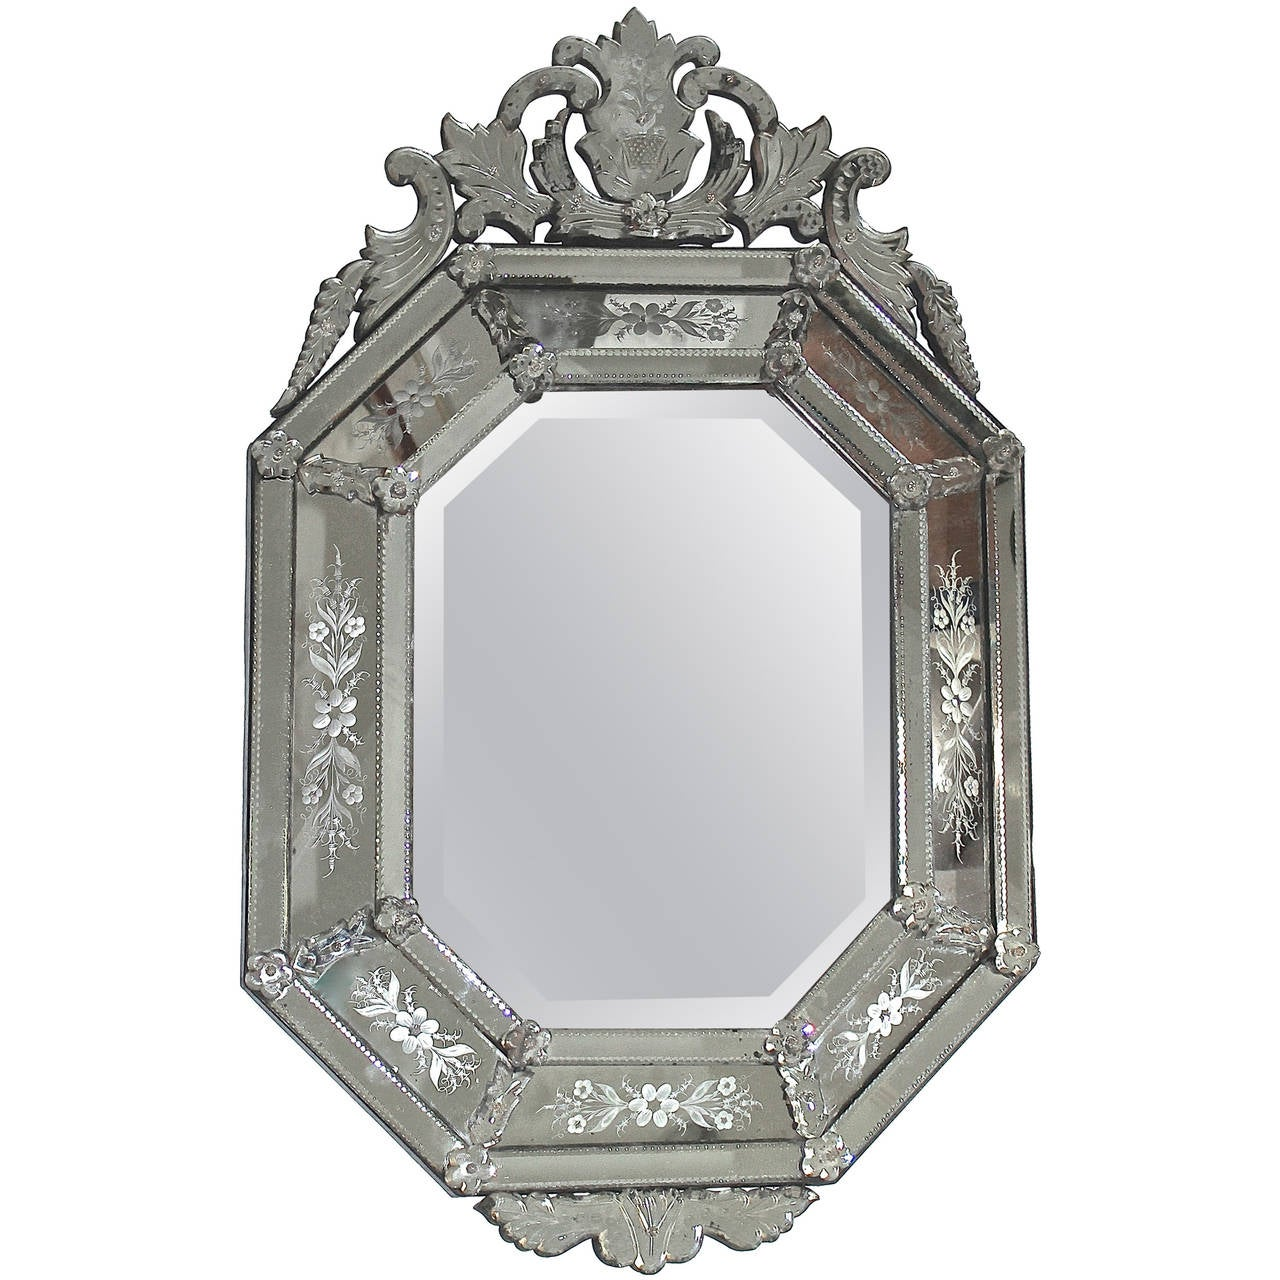 Italian venetian etched glass wall mirror for sale at 1stdibs italian venetian etched glass wall mirror 1 amipublicfo Images